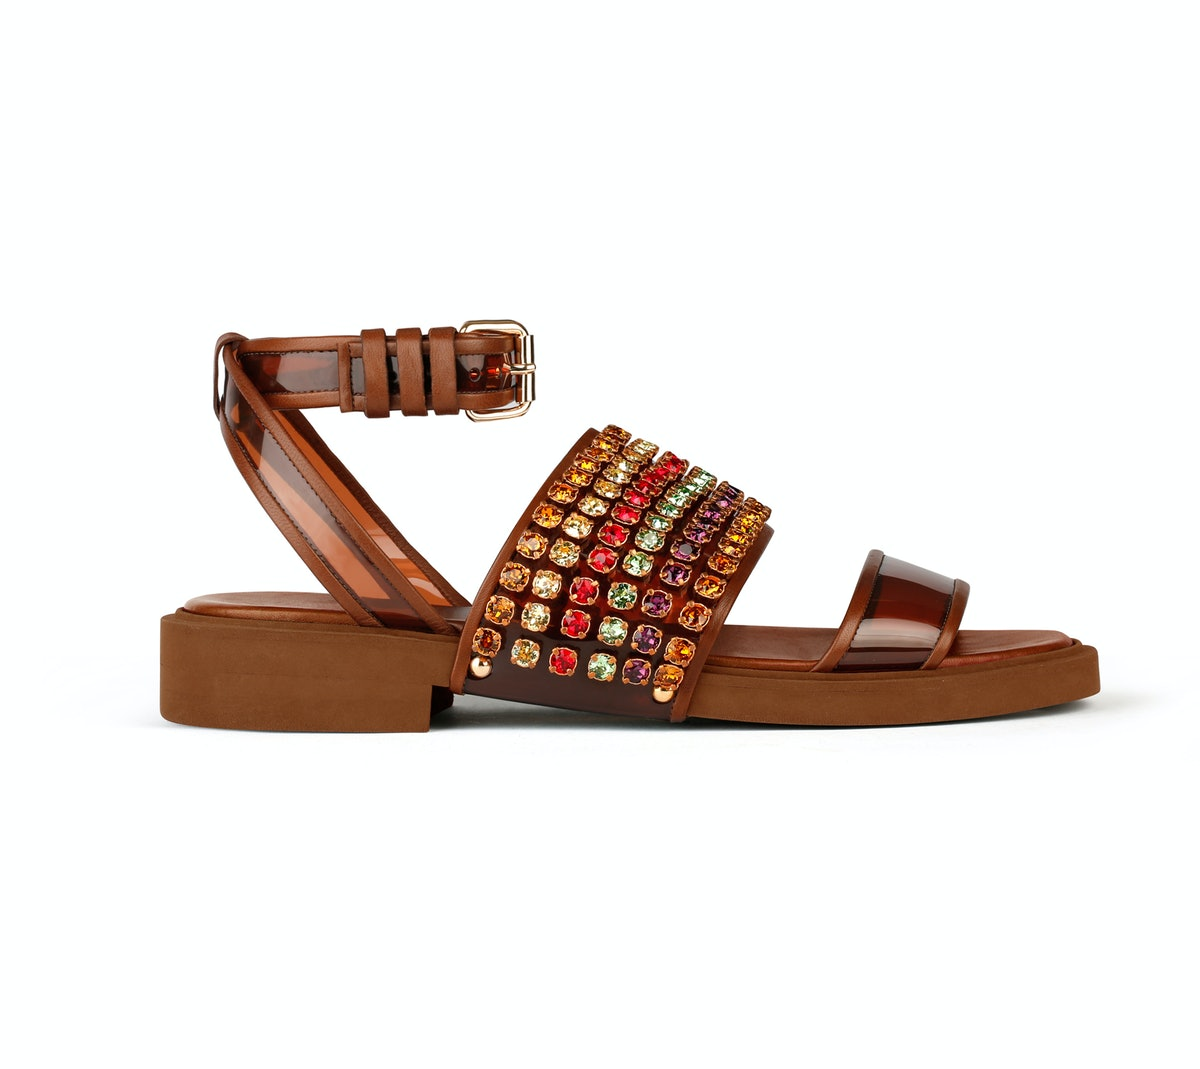 Givenchy by Riccardo Tisci sandals